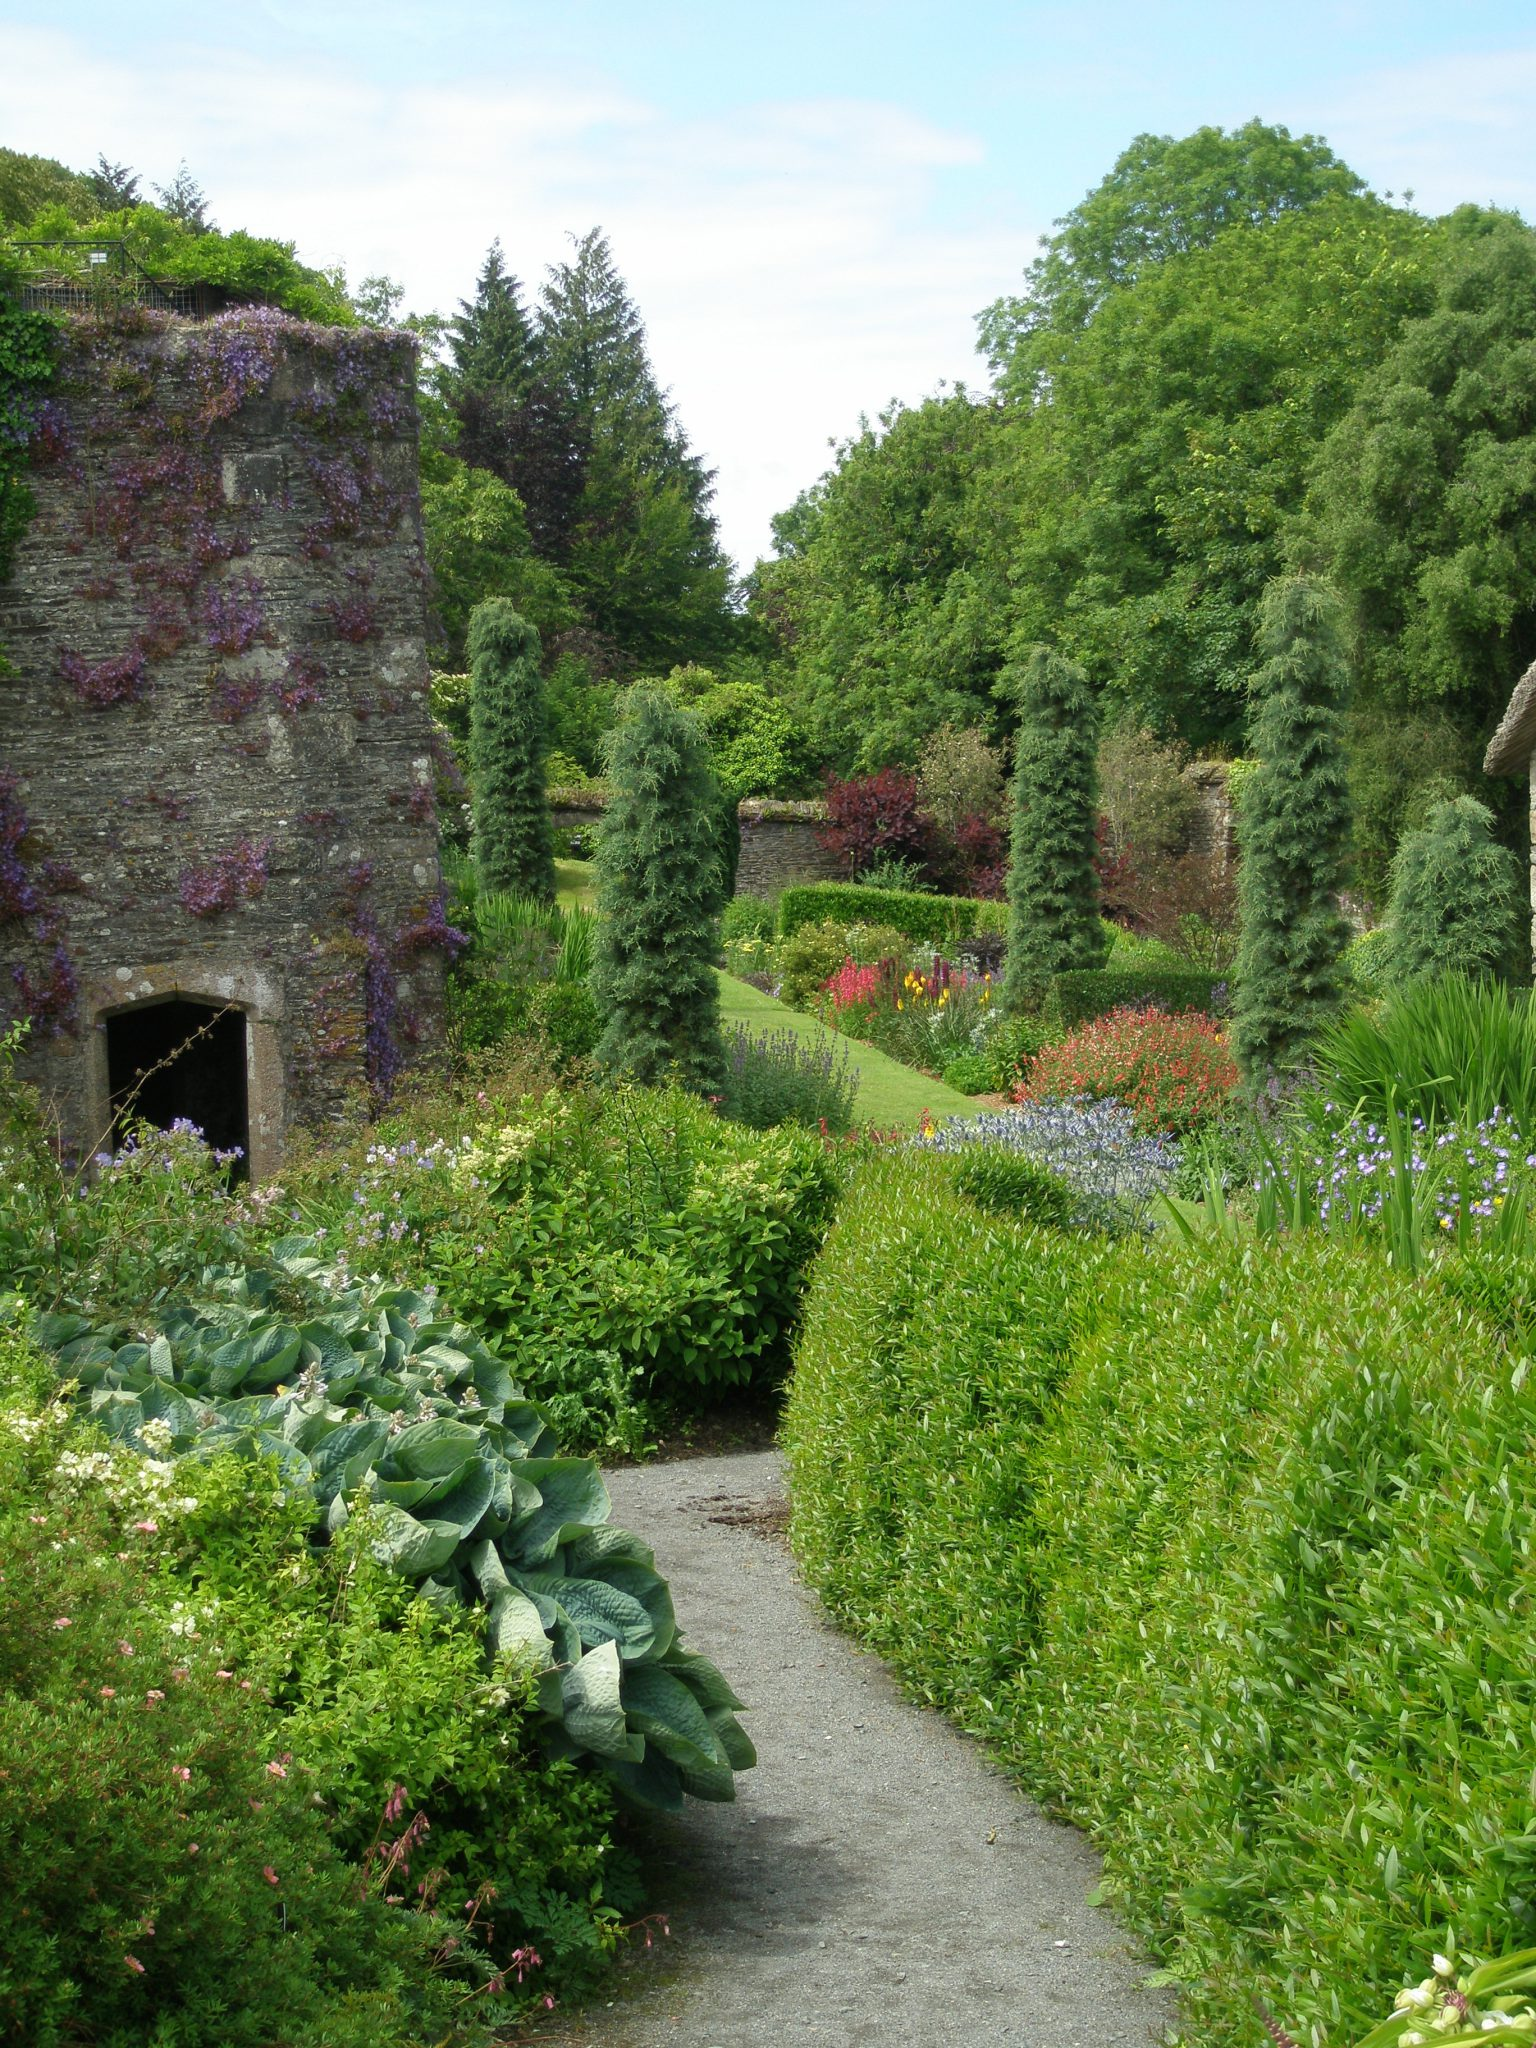 A closer look at the Tower Ruins and the Bottom Terrace Garden